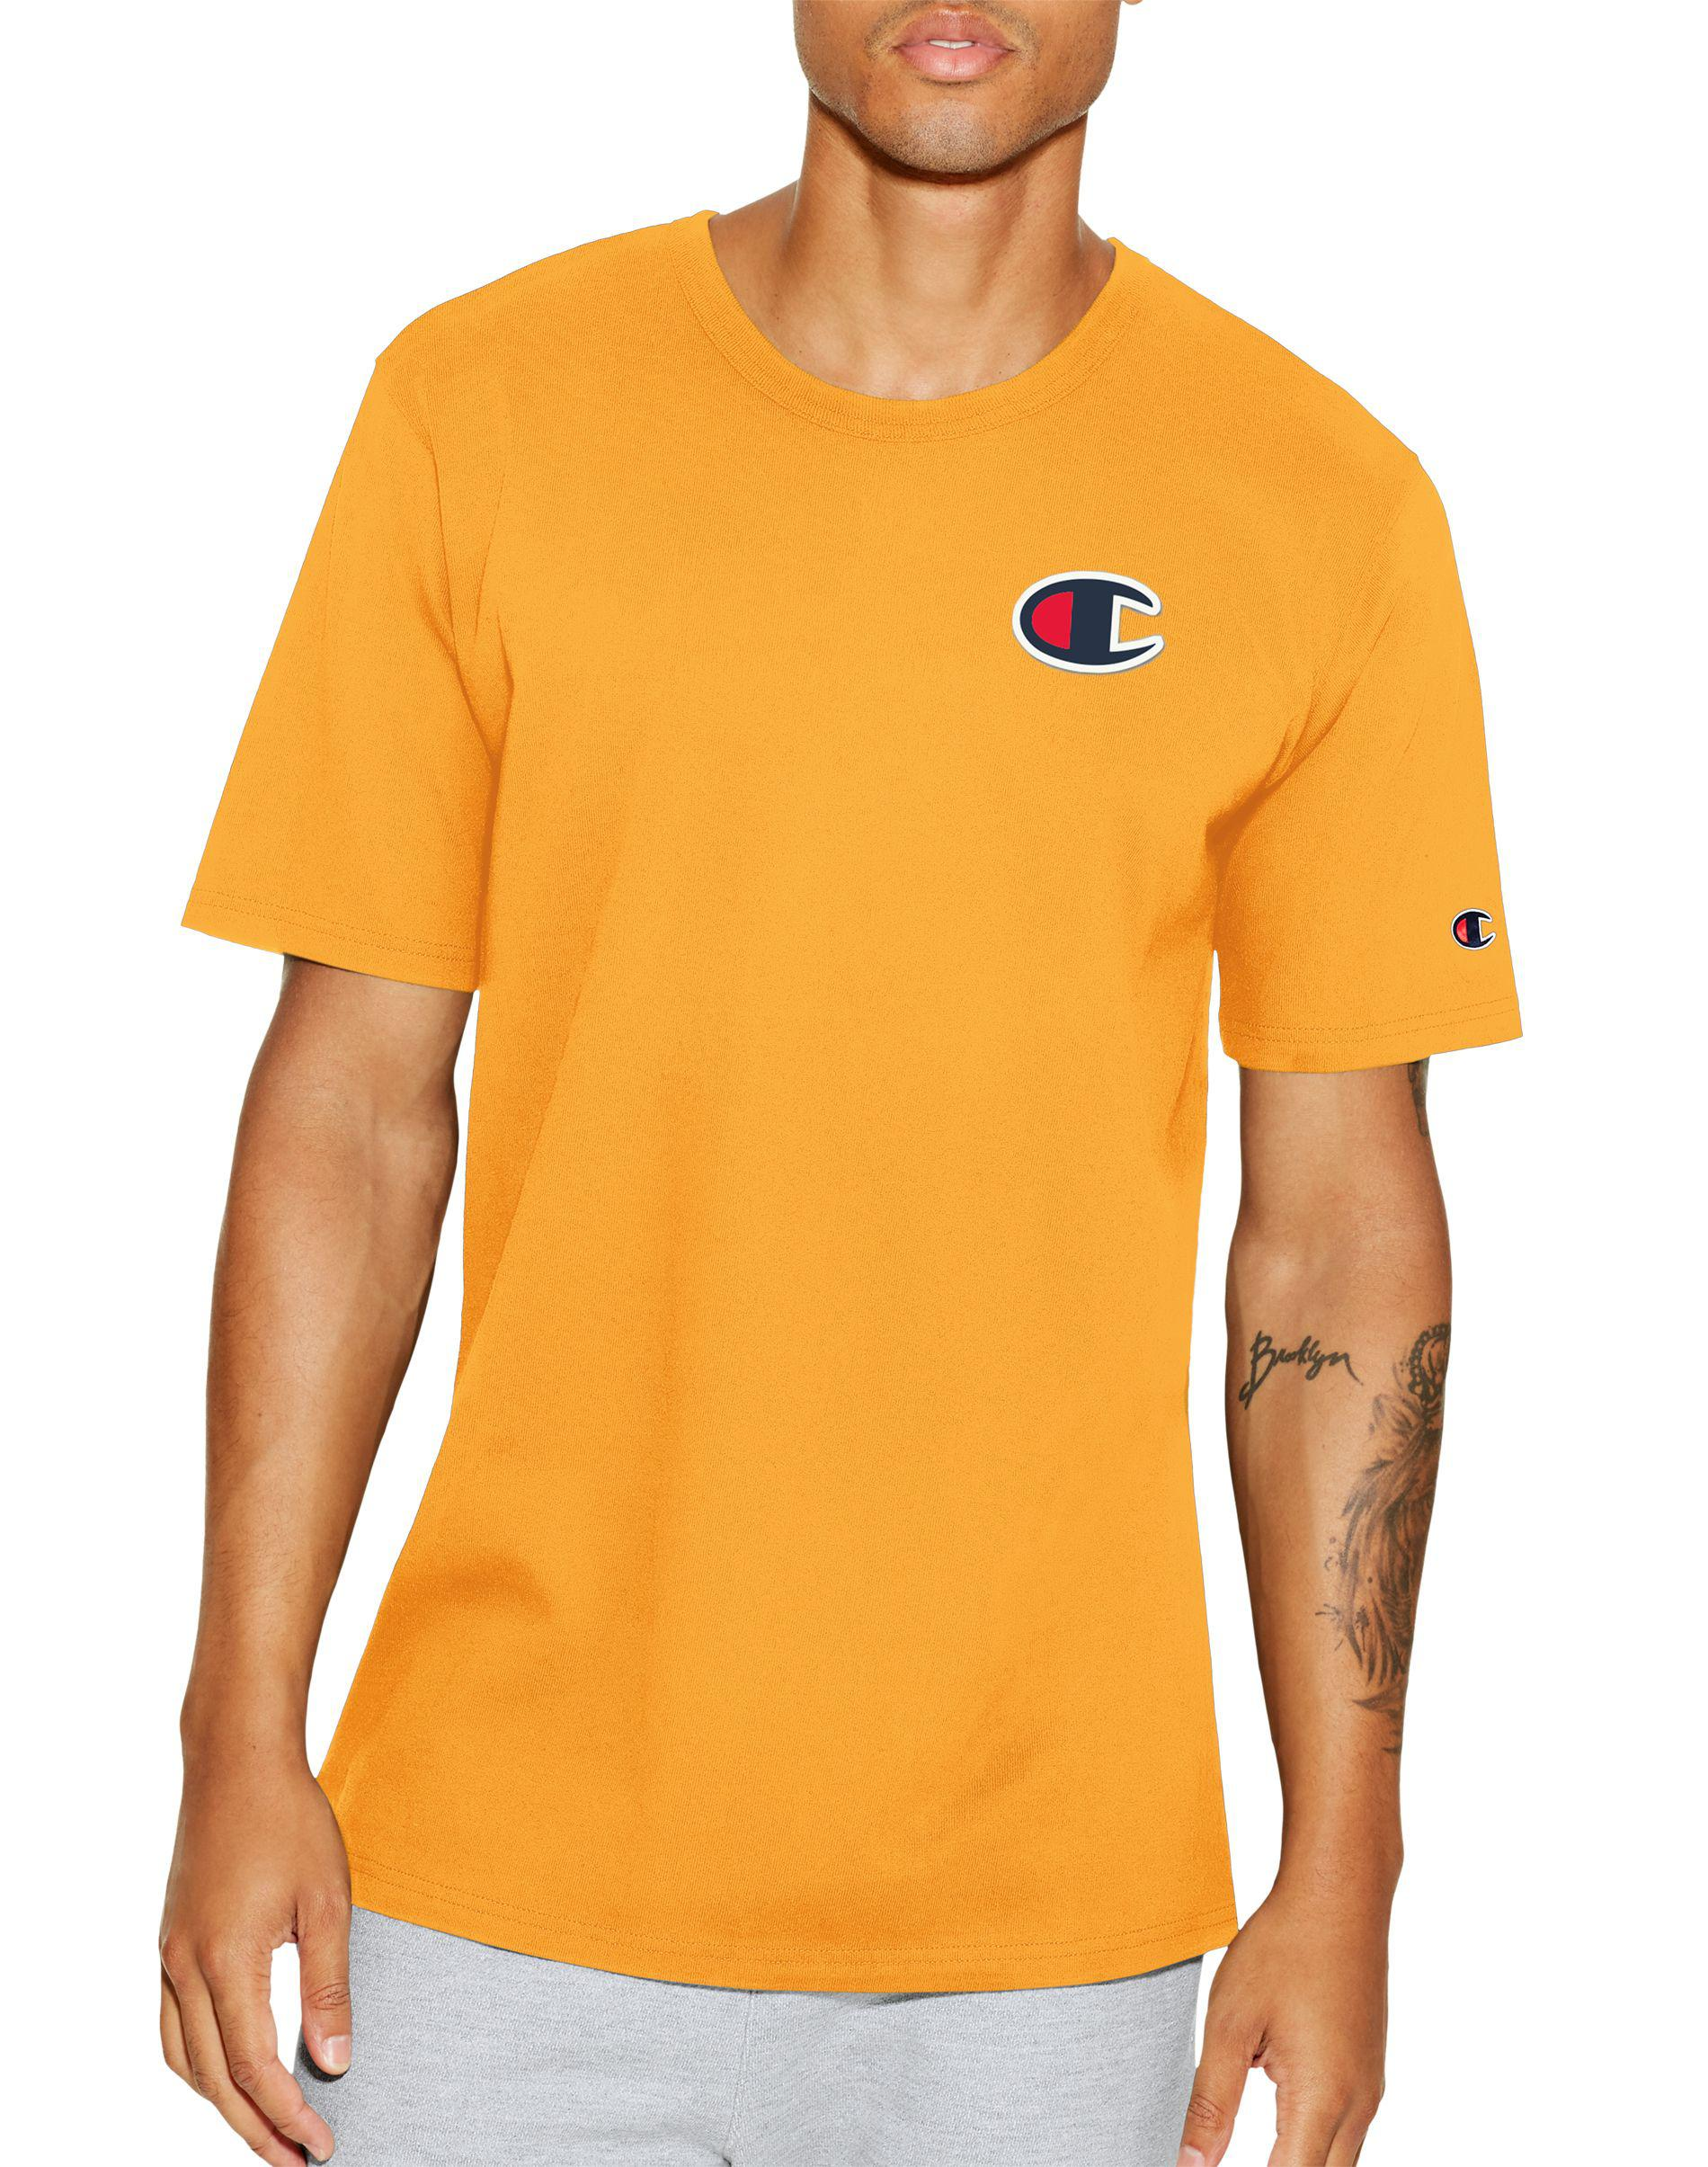 82dede368 Lyst - Champion Lifetm Graphic Heritage Tee in Orange for Men